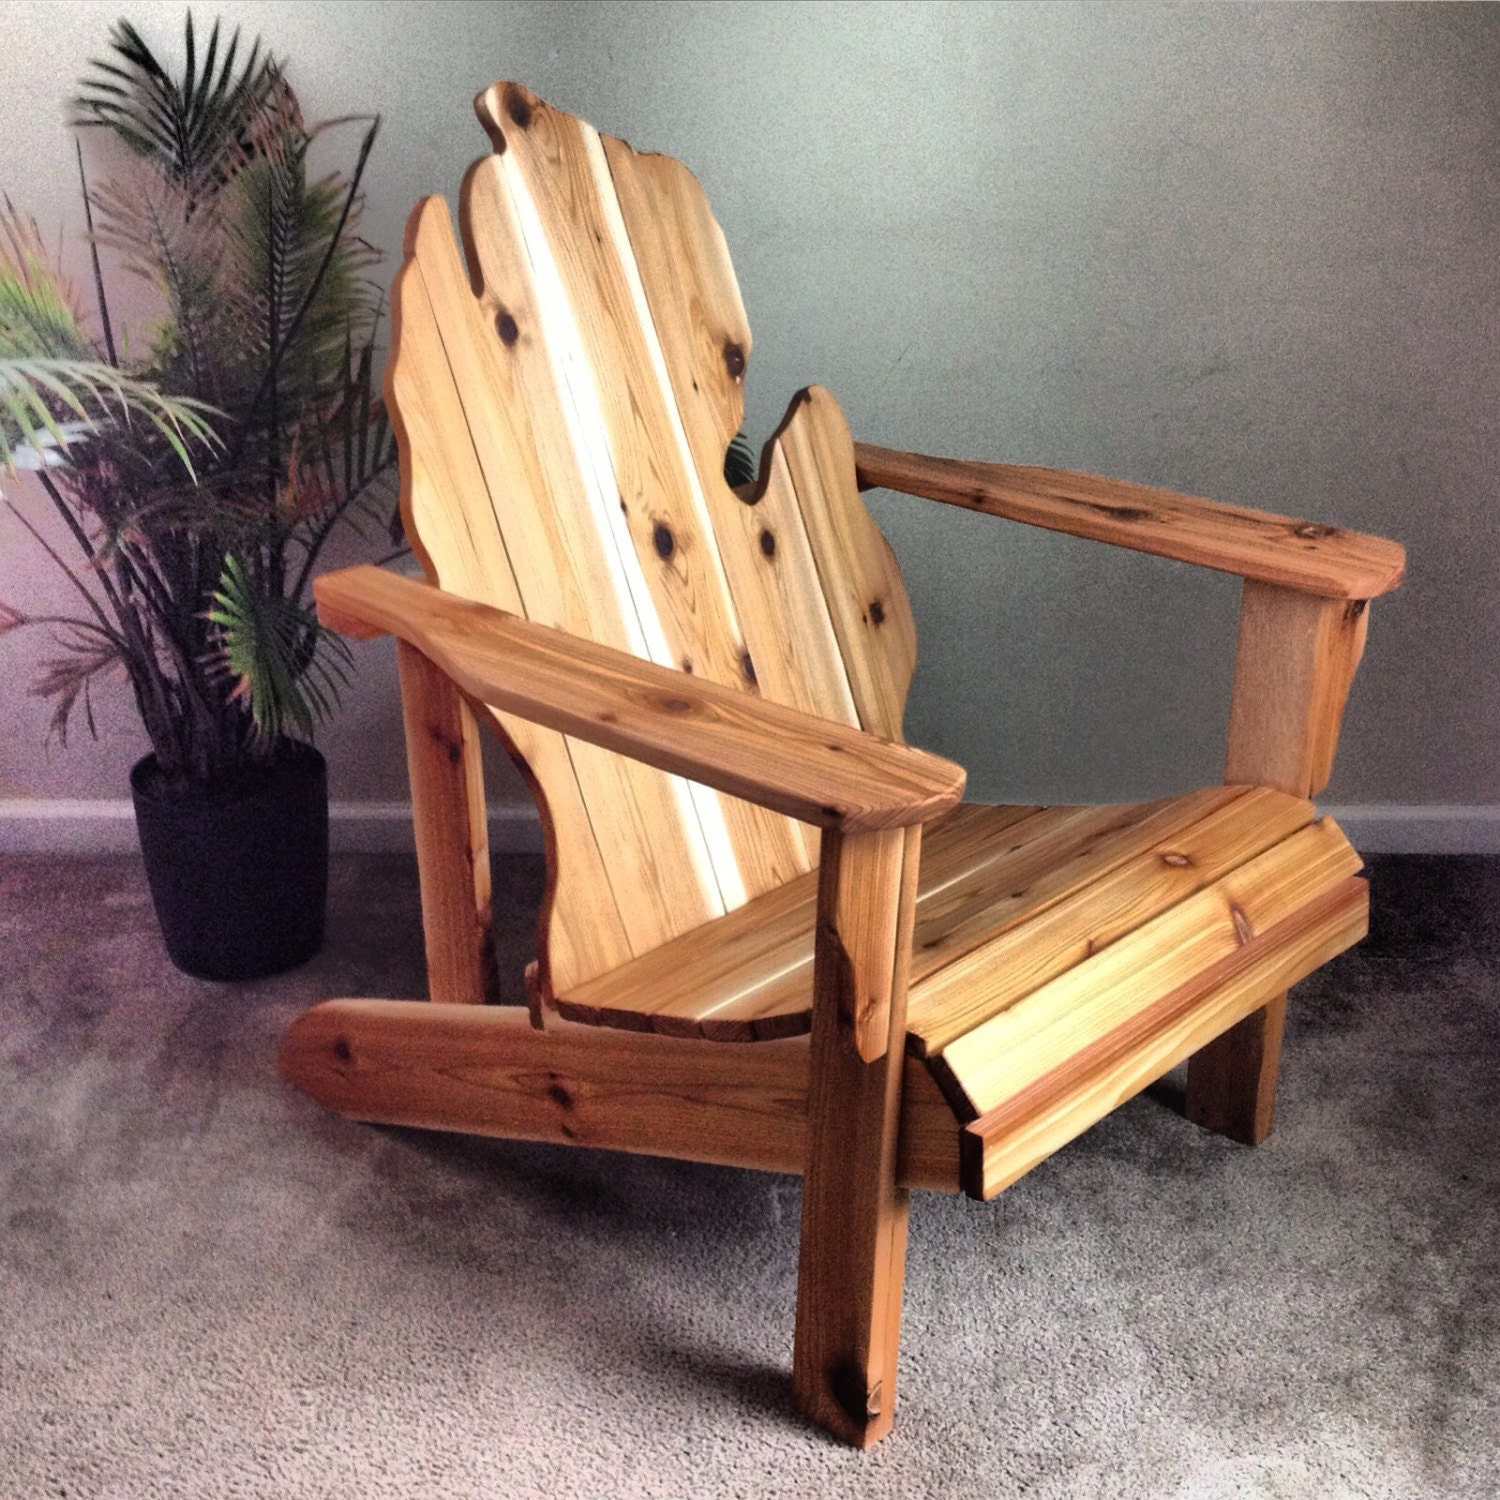 Michigan adirondack chair handmade wood furniture rustic patio Homemade wooden furniture